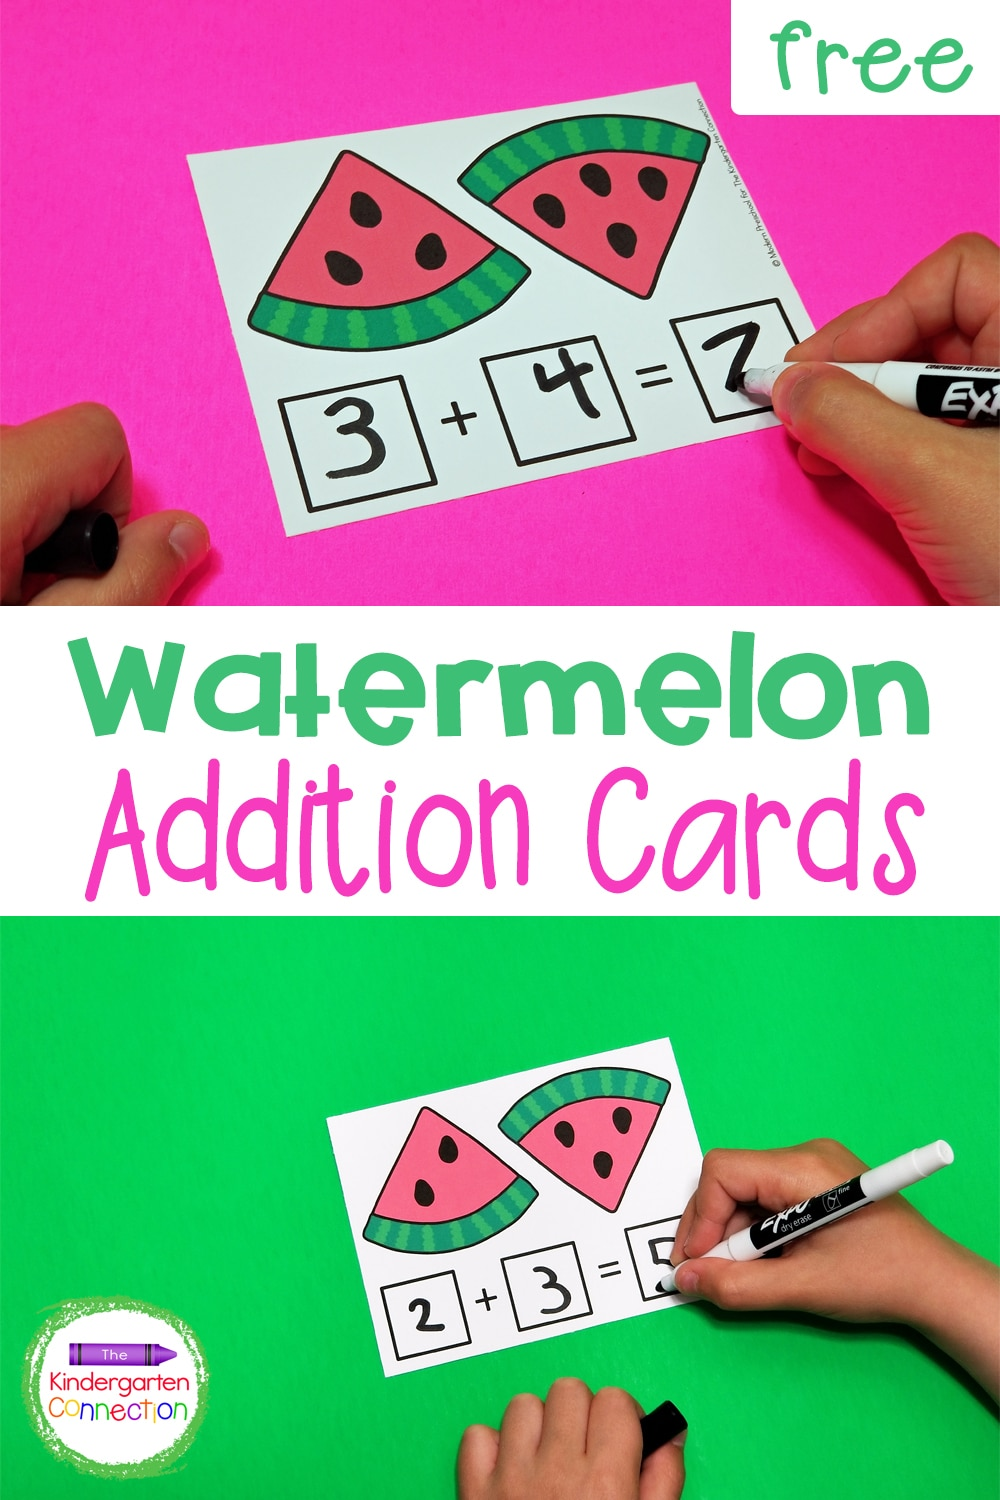 These free printable Watermelon Seed Addition Cards for Kindergarten are a fun way to practice counting and beginning addition skills!